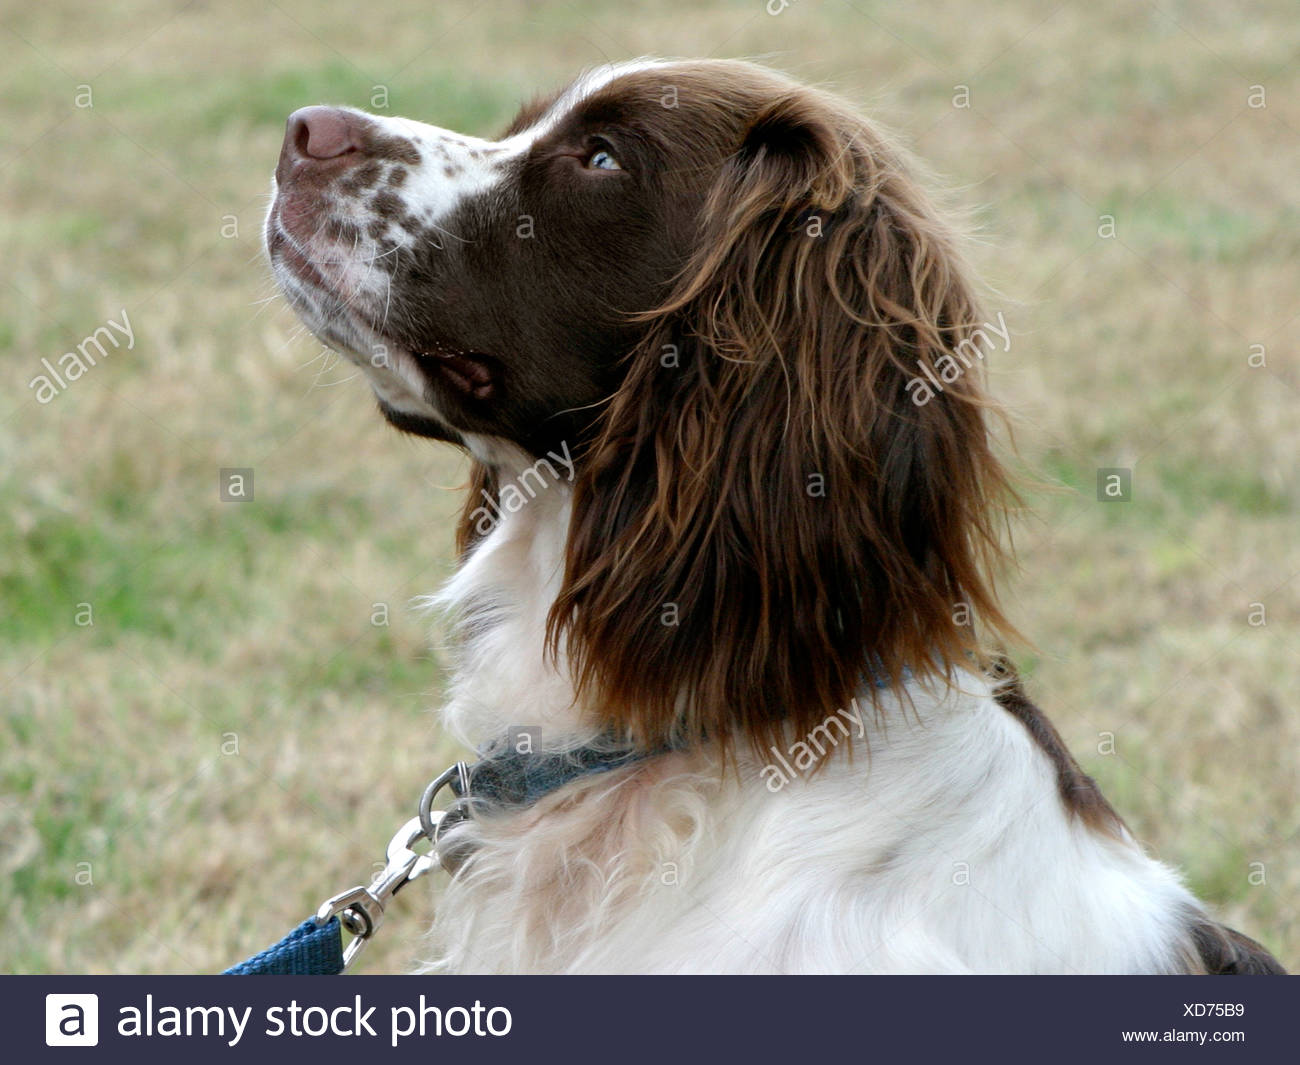 Springer spaniel looking upwards. - Stock Image